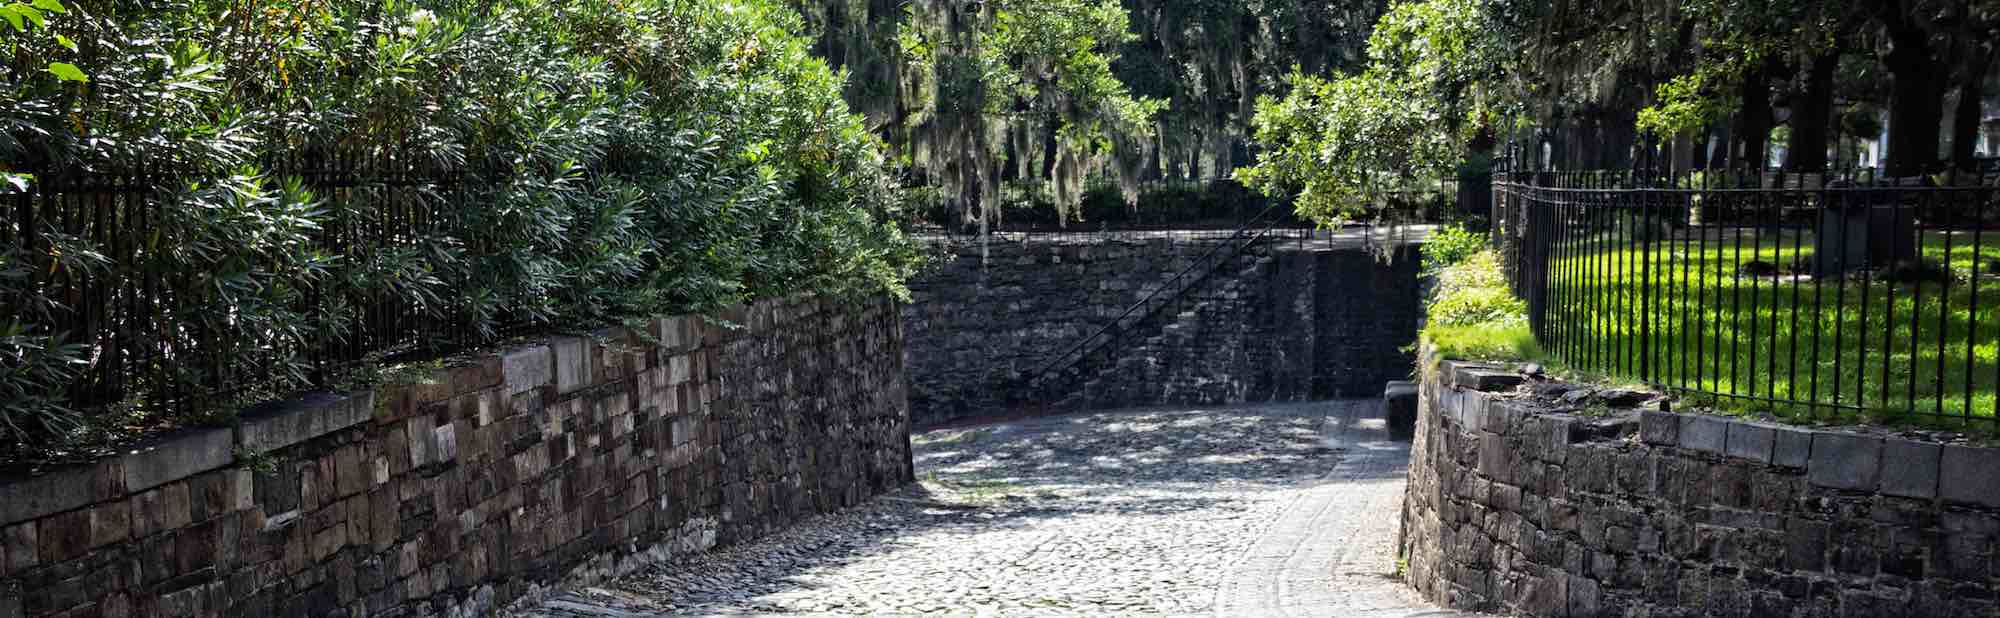 Cobblestone ramp and walls around the perimeter of Savannah, GA's Emmet Park.